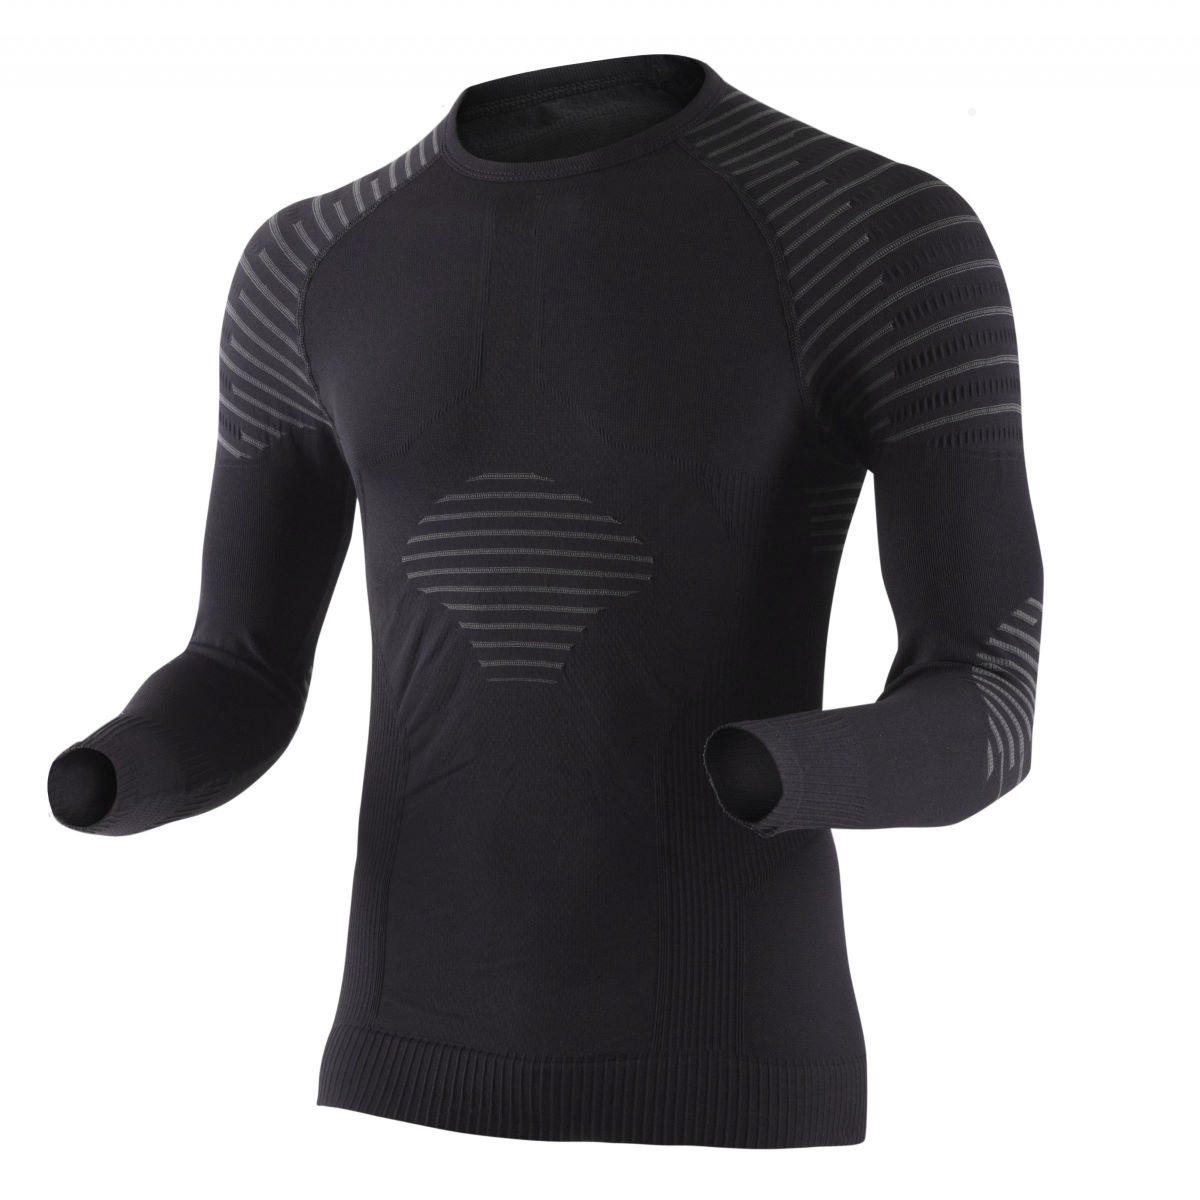 Maillot X-Bionic Invent UW (manches longues, blanc) - Small Noir